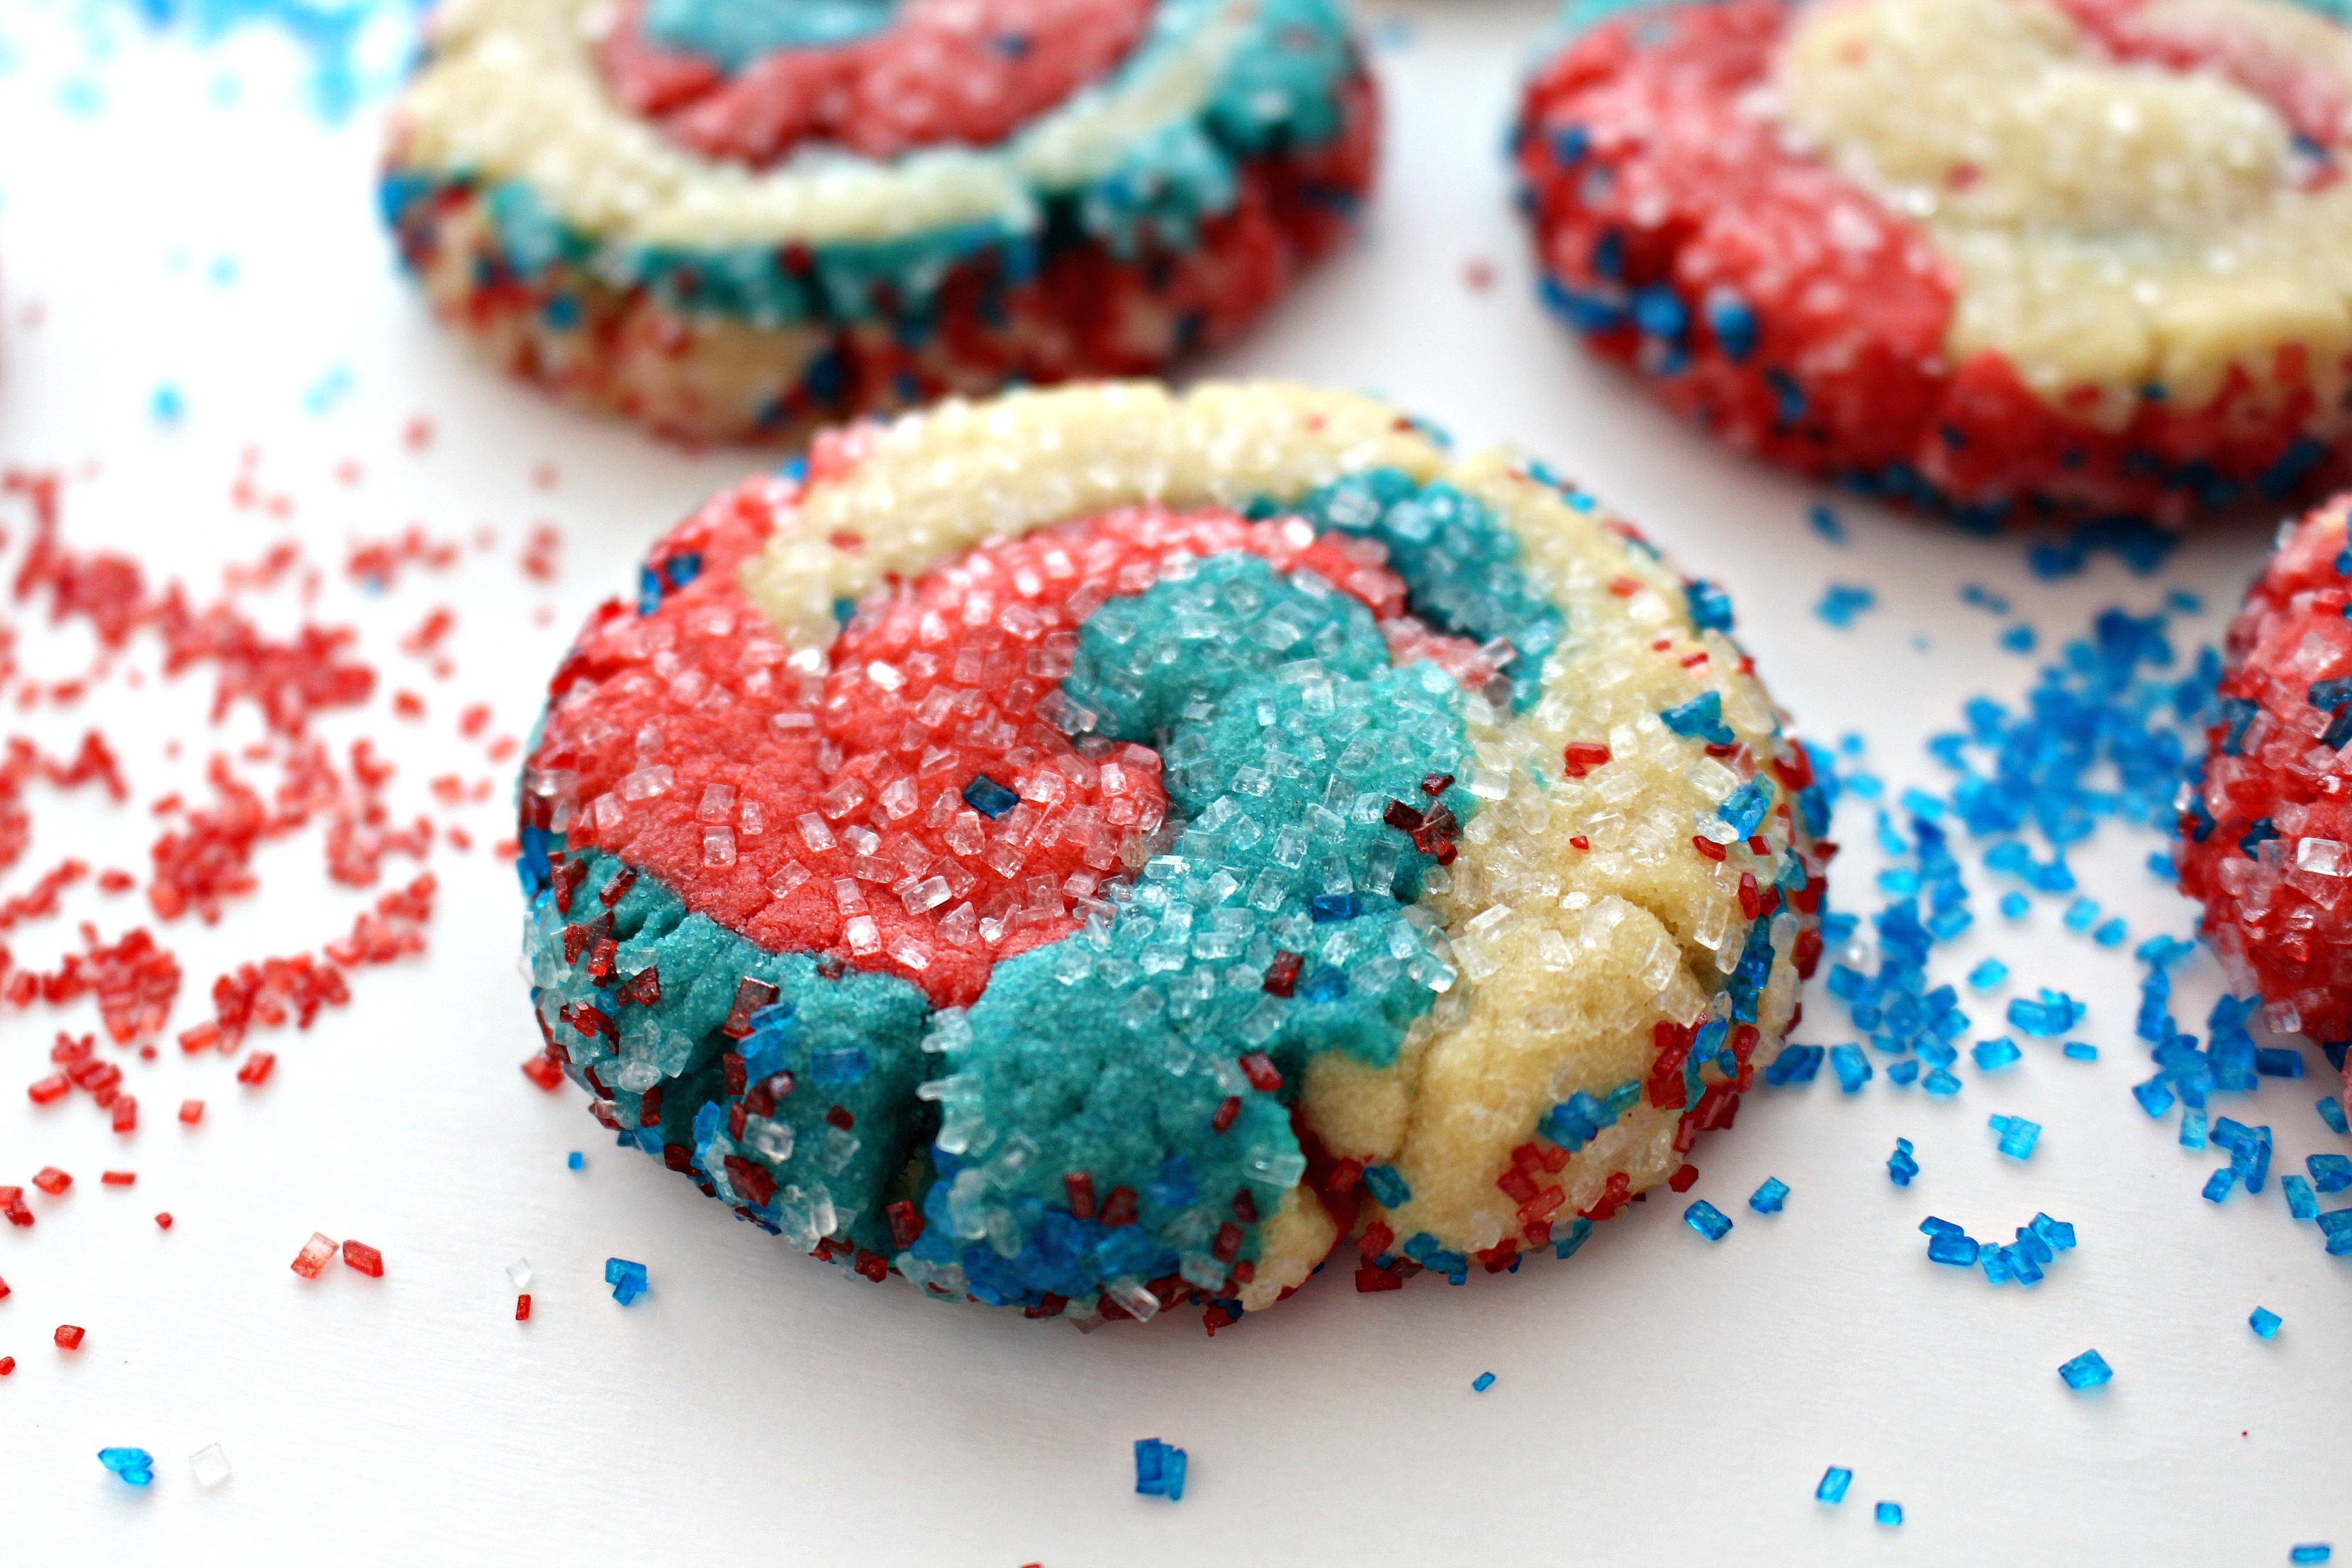 Fireworks Sugar Cookies for Military Care Package #21 - The Monday Box